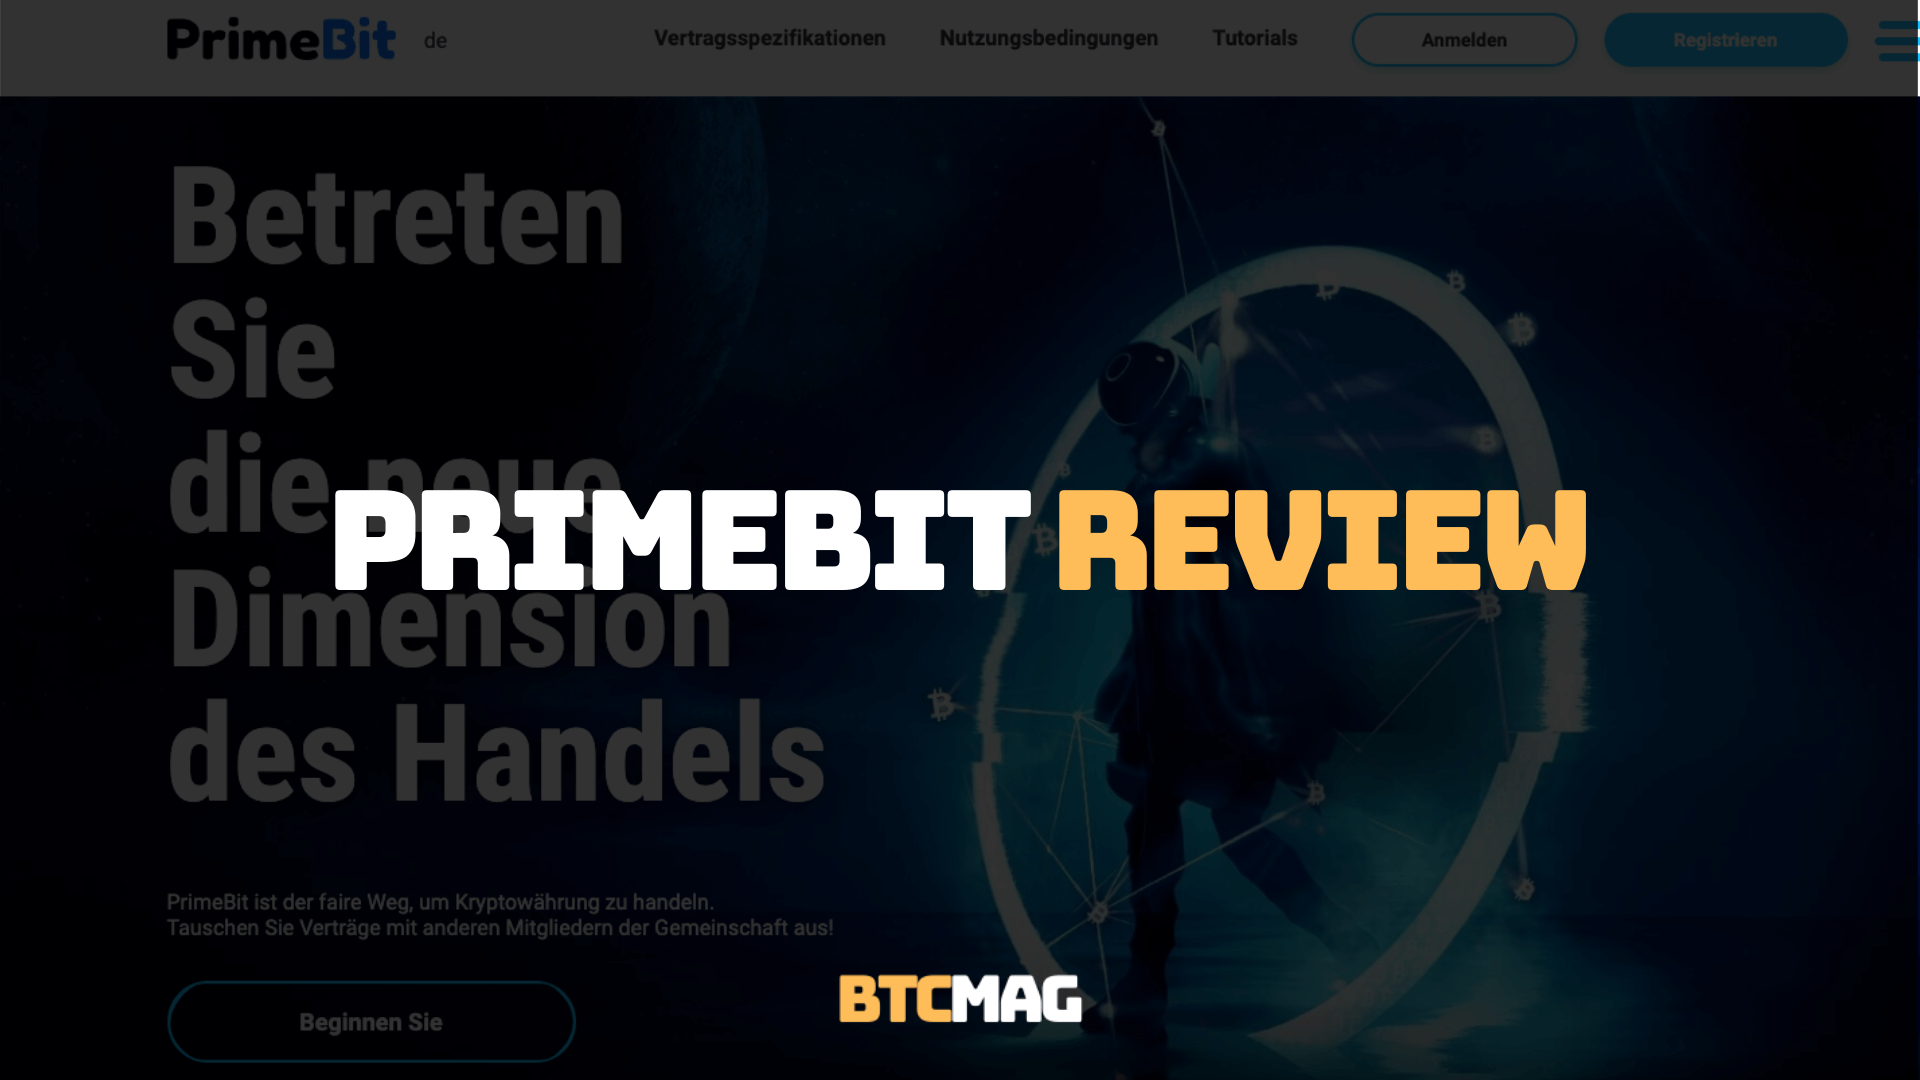 PrimeBit Review